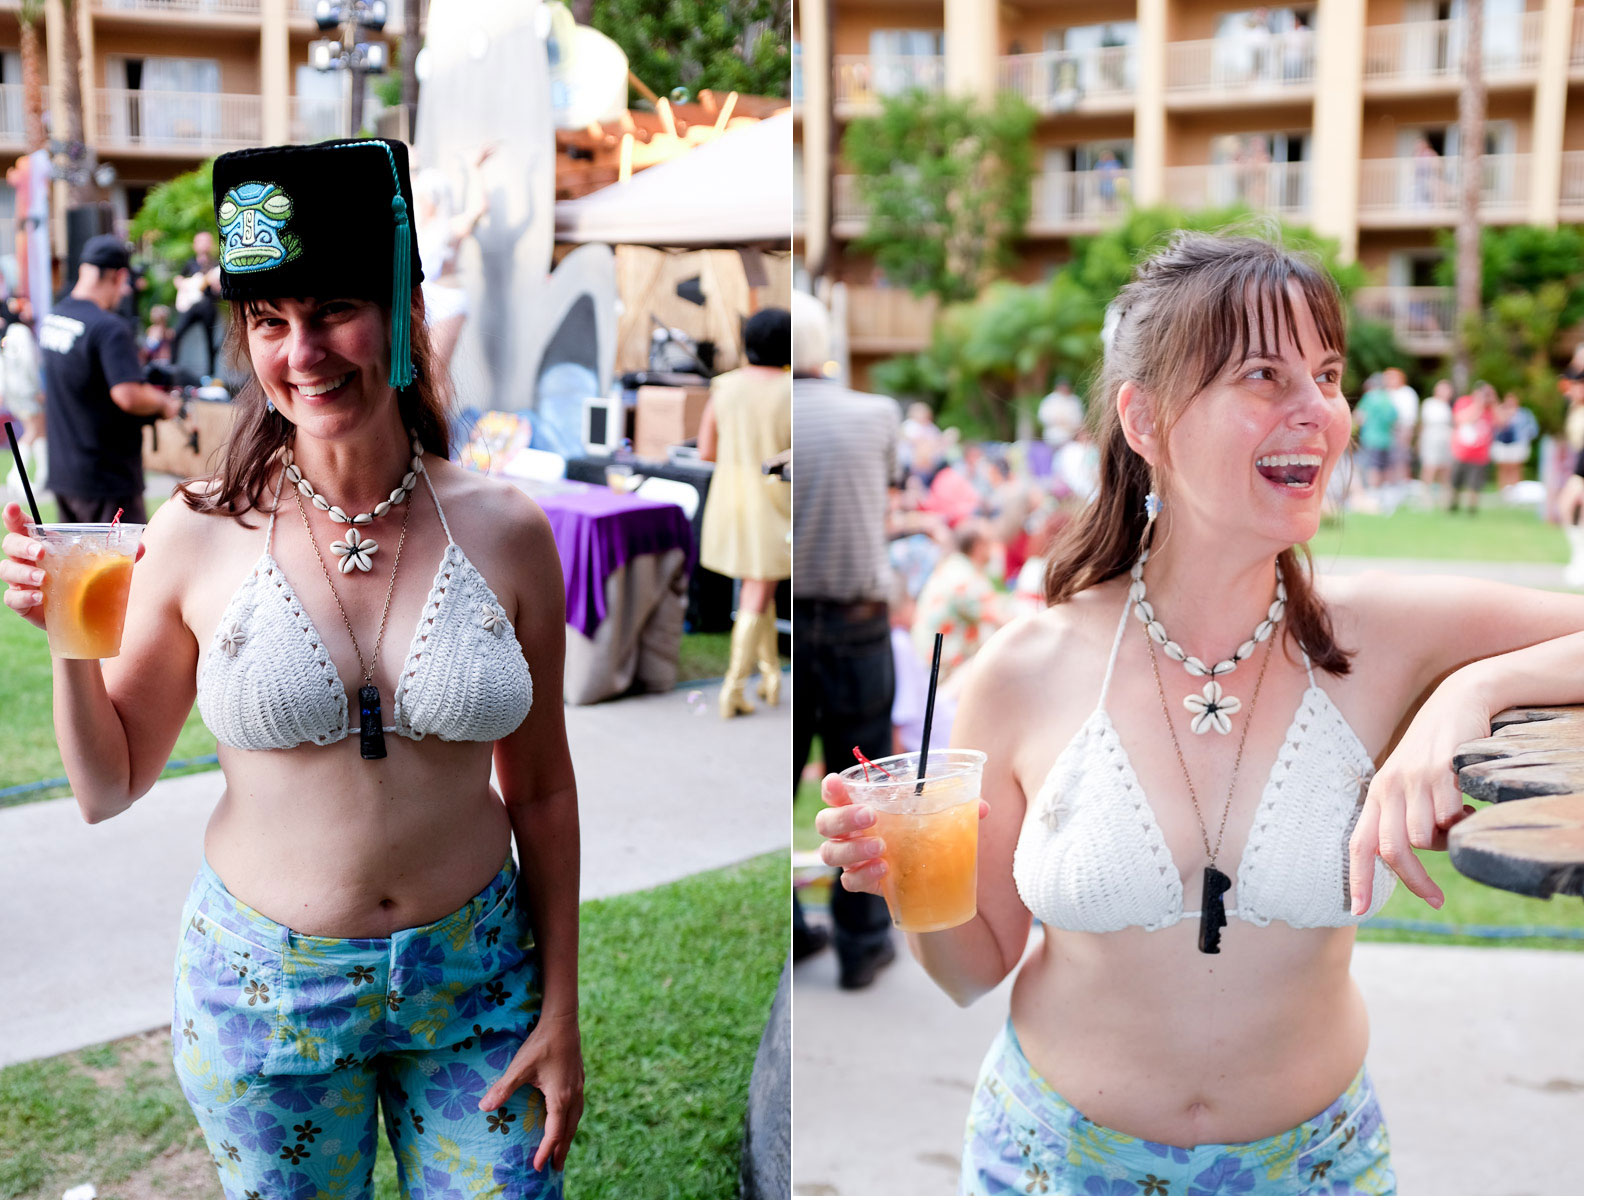 The built-in flash on the Fuji is never going to compete with a speedlight, but it's fine for creating fill light. Here's Julie with and without fill flash.  Now the party is getting started!